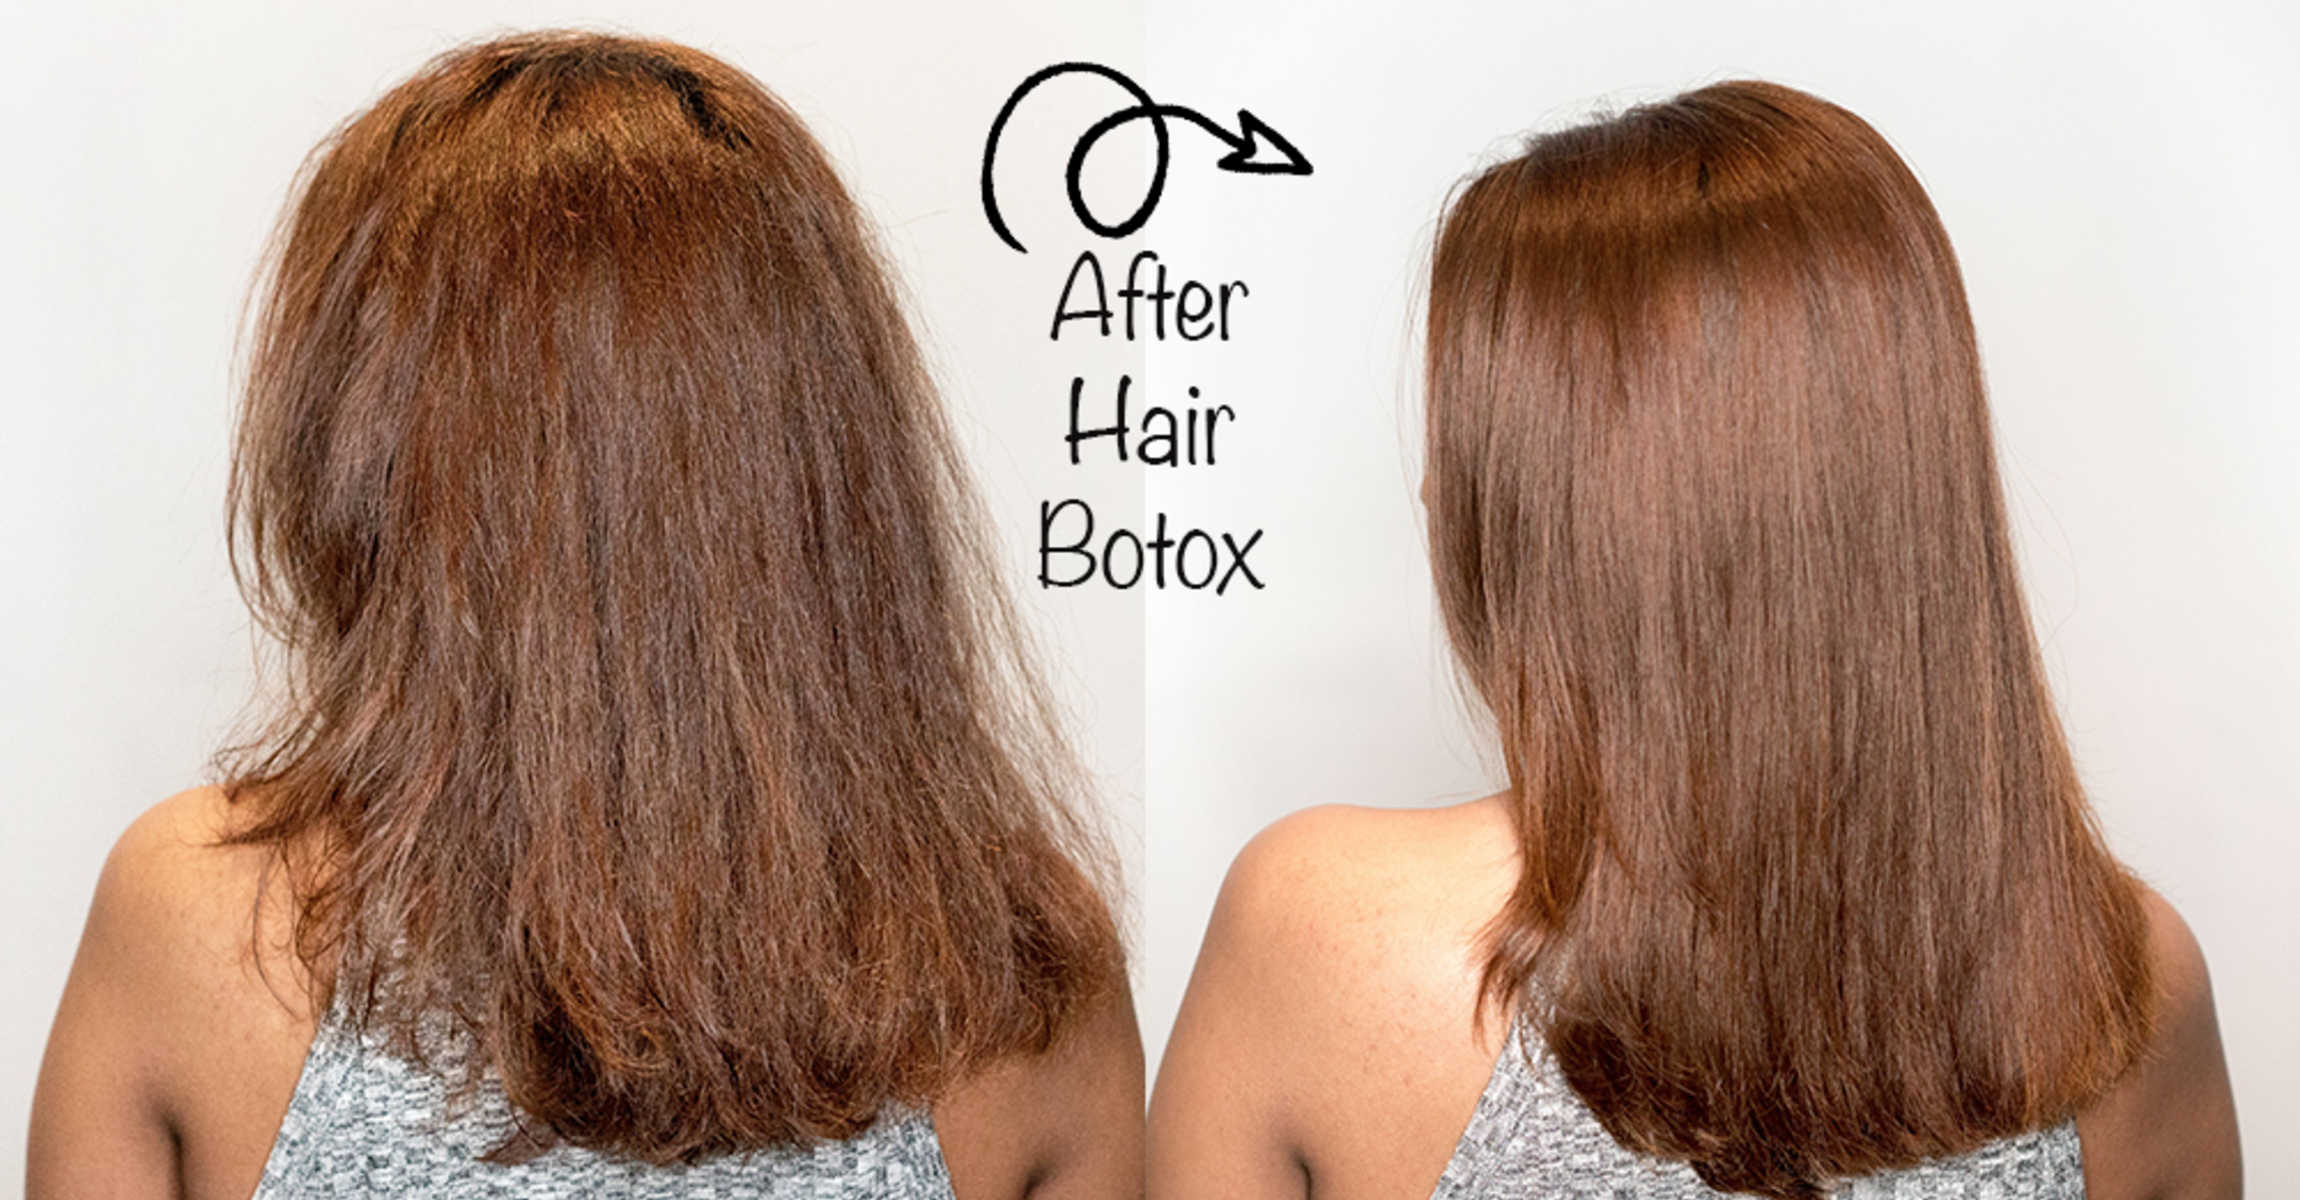 You Can Now Botox Your Hair With This Treatment From Chez Vous Hair Salon